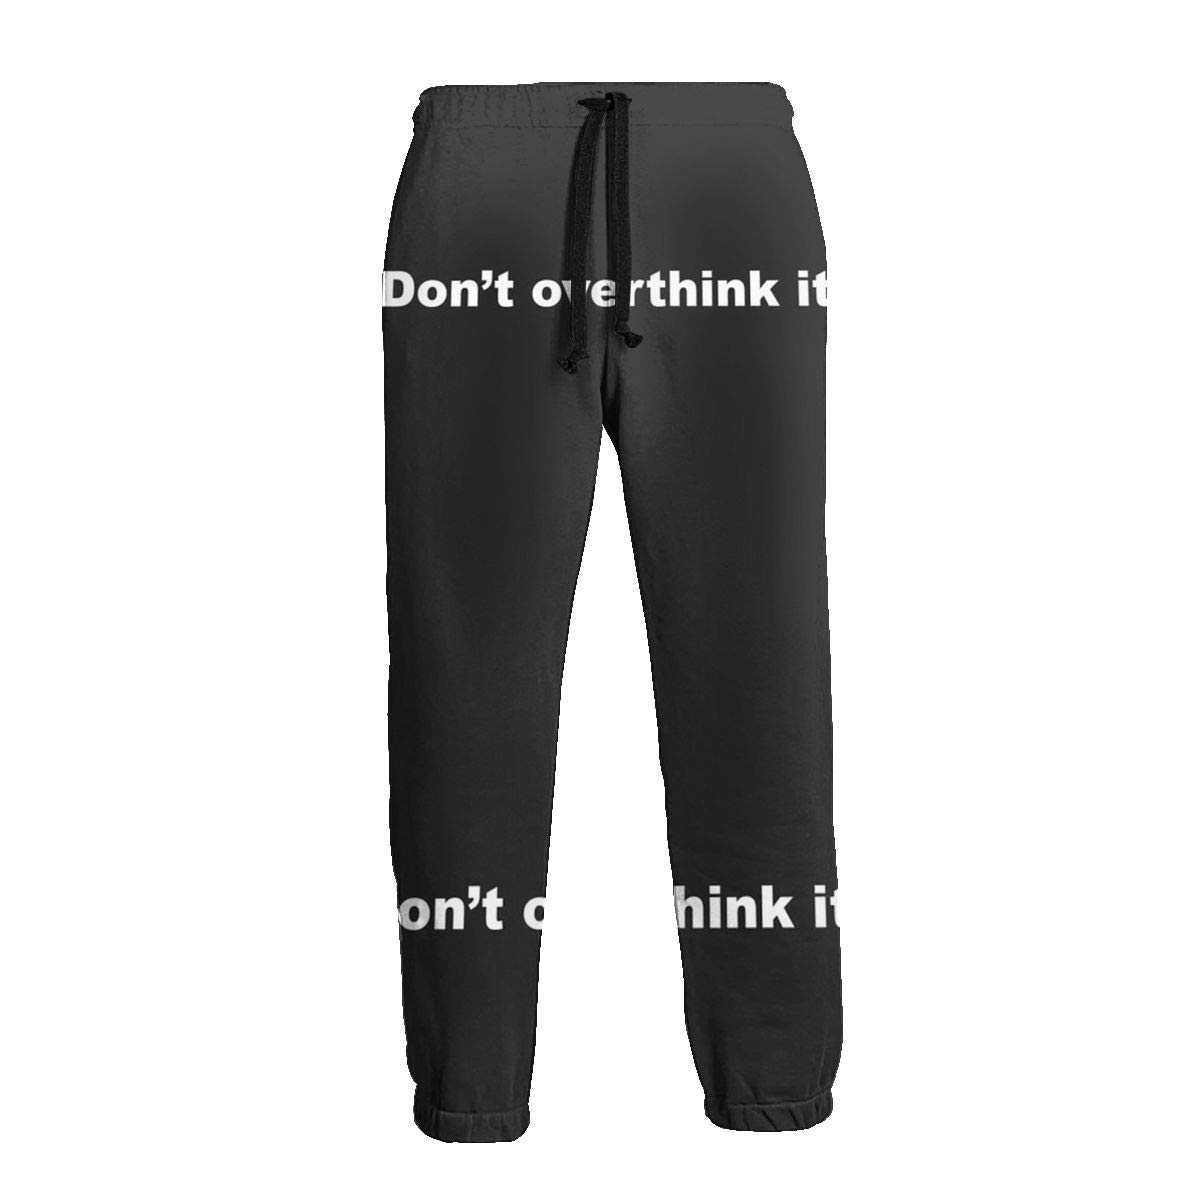 Panib Mens Big and Tall Gym Sweats Dont Overthink It Sweatpants with Side Pockets